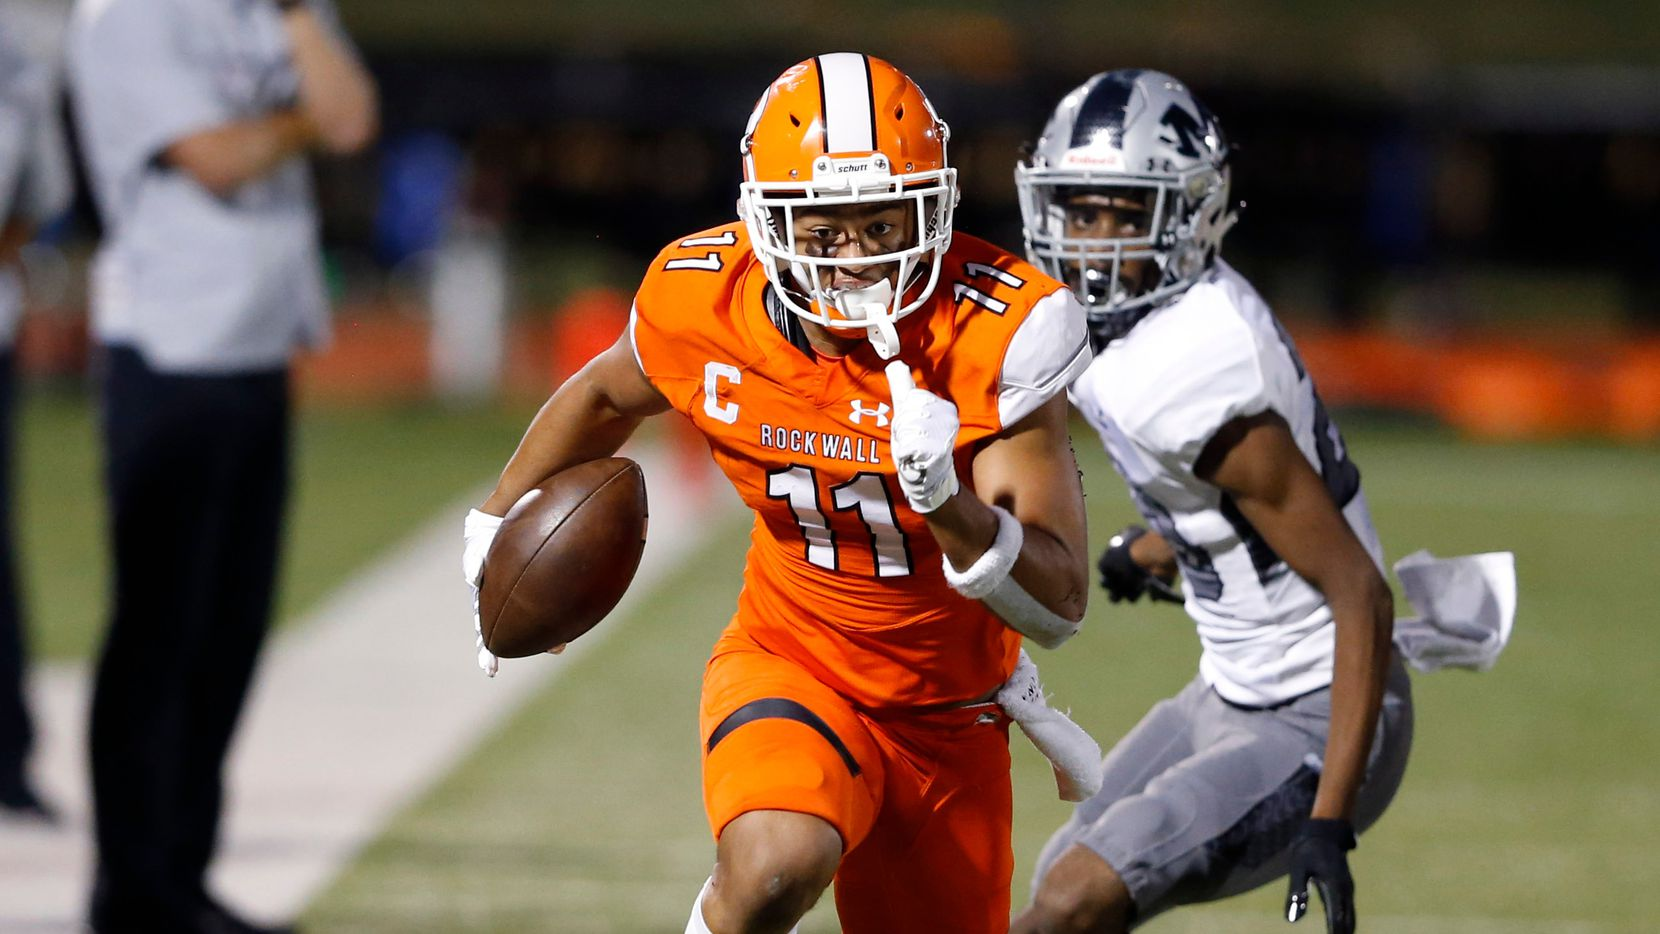 Rockwall's Jaxon Smith-Njigba (11) runs up the field after the catch in a game against Arlington Martin during the first half of play at Wilkerson-Sanders Memorial Stadium in Rockwall, Texas on Friday, September 20, 2019.